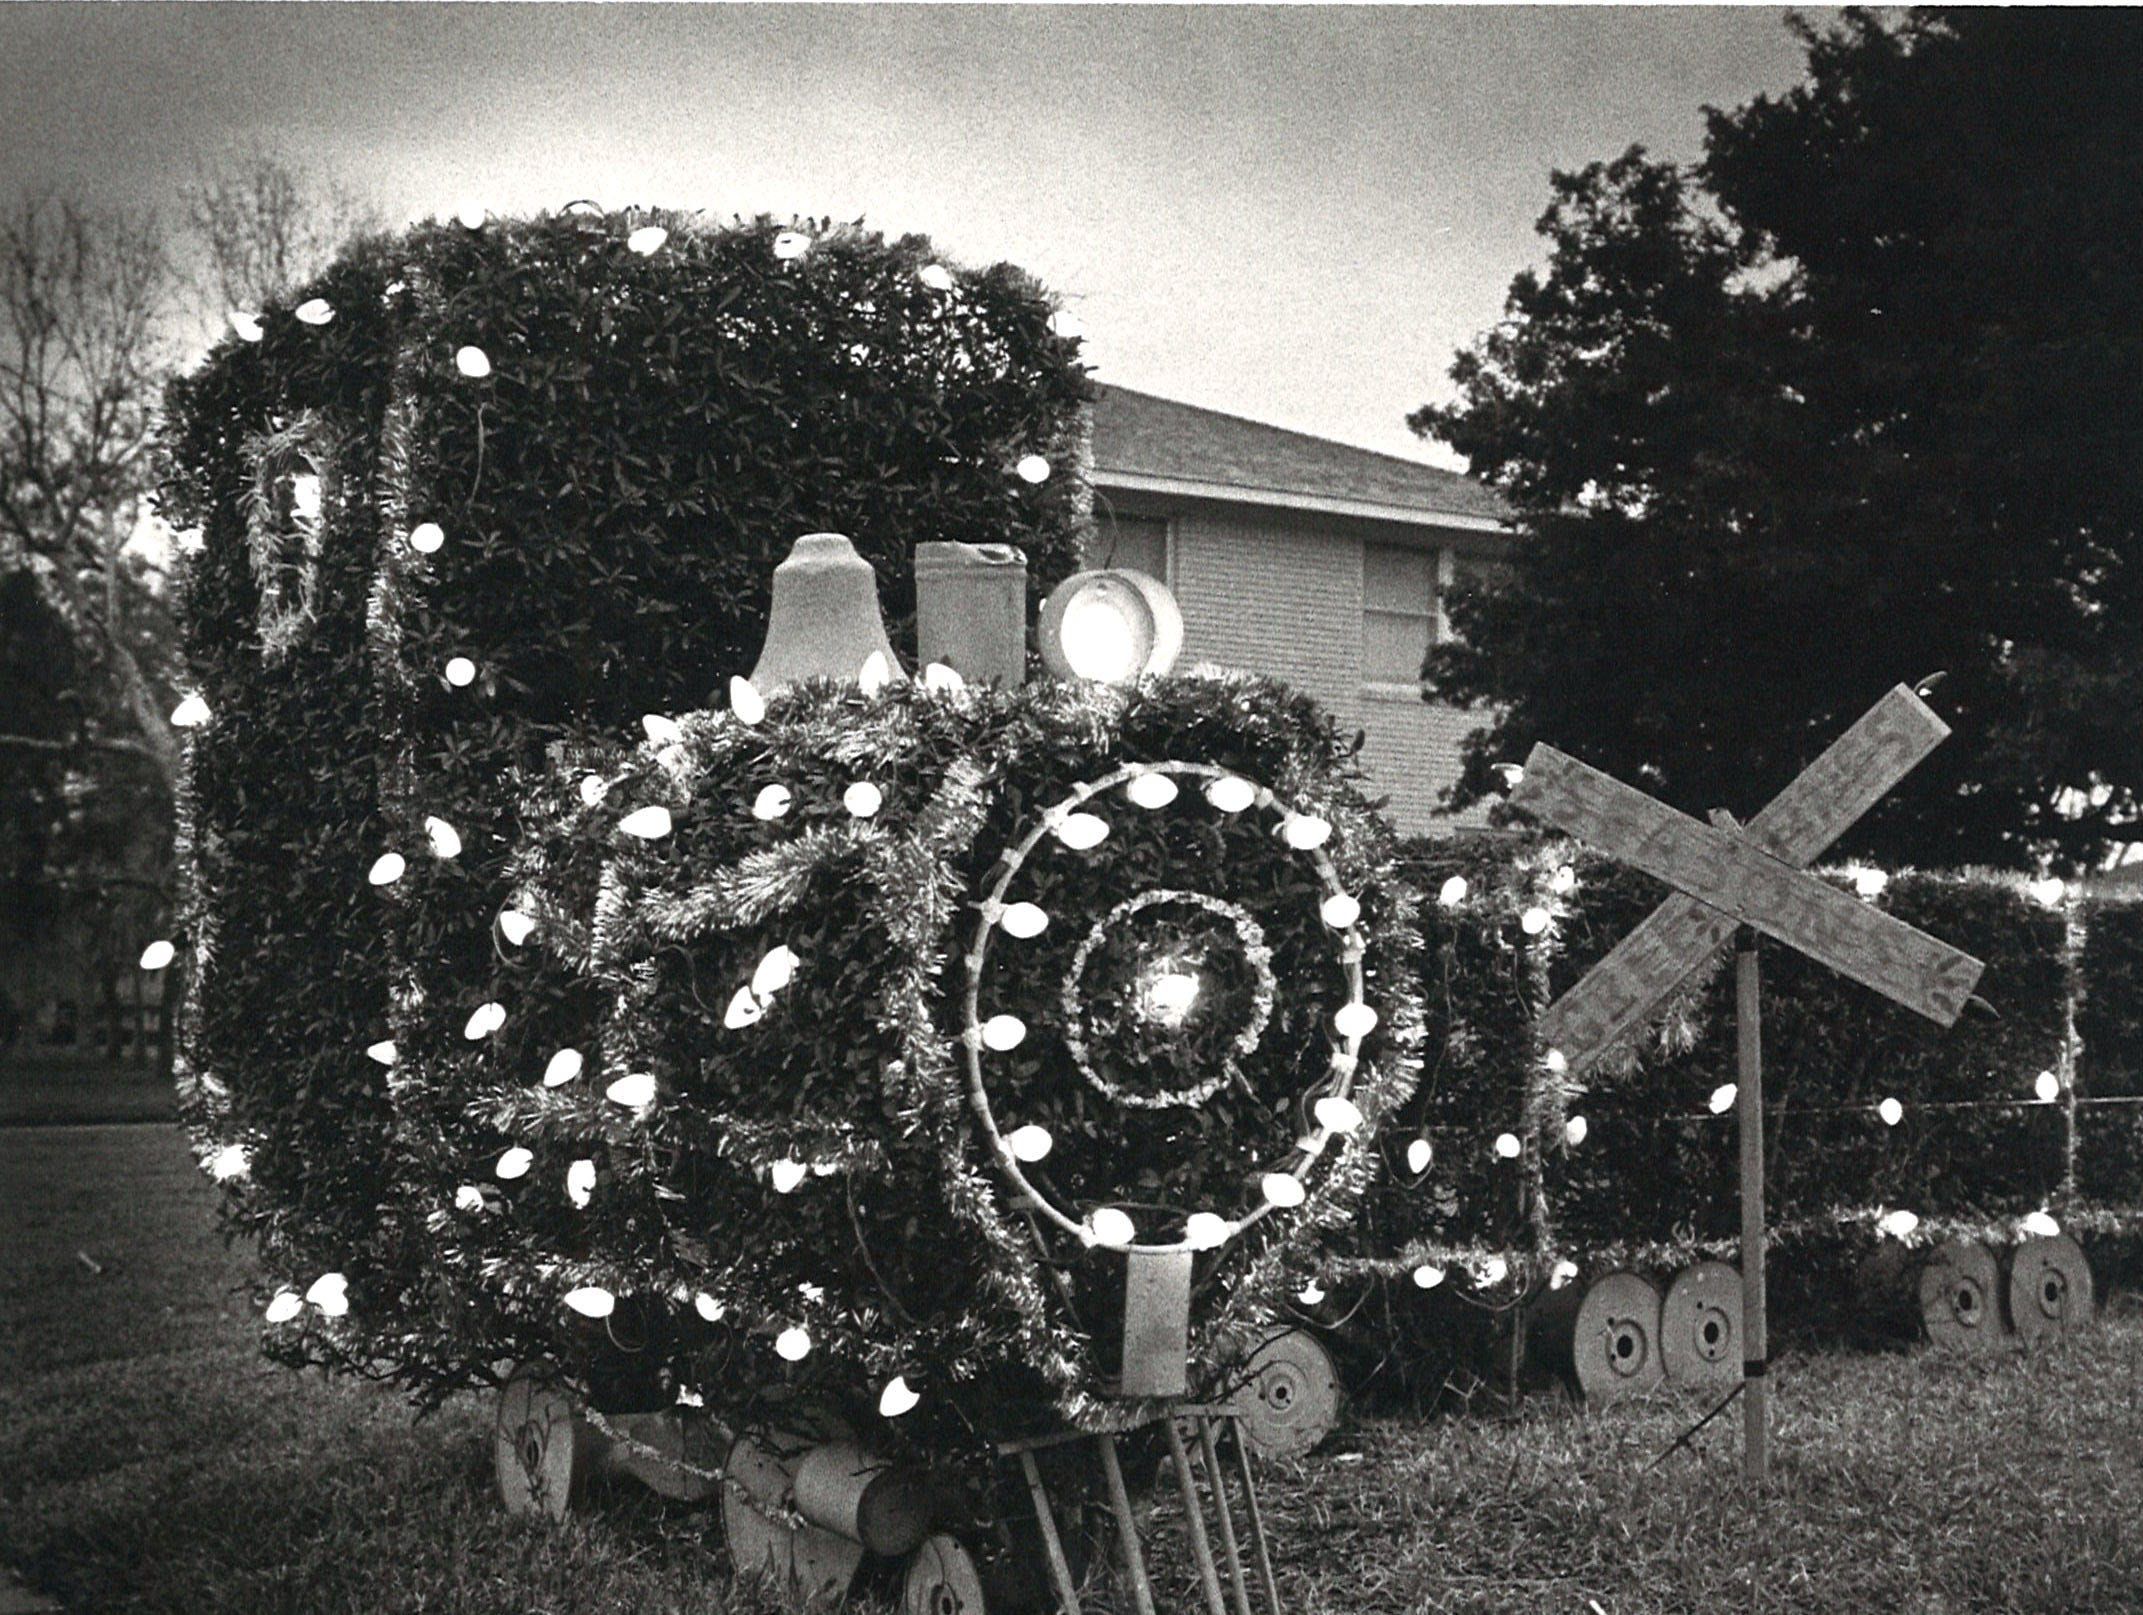 A bush trimmed and decorated into a train shape at the Aldridge home on Delaine and Doddridge in 1980. Bill Aldridge decorated his home with many purchased and handmade decorations for more than 30 years.